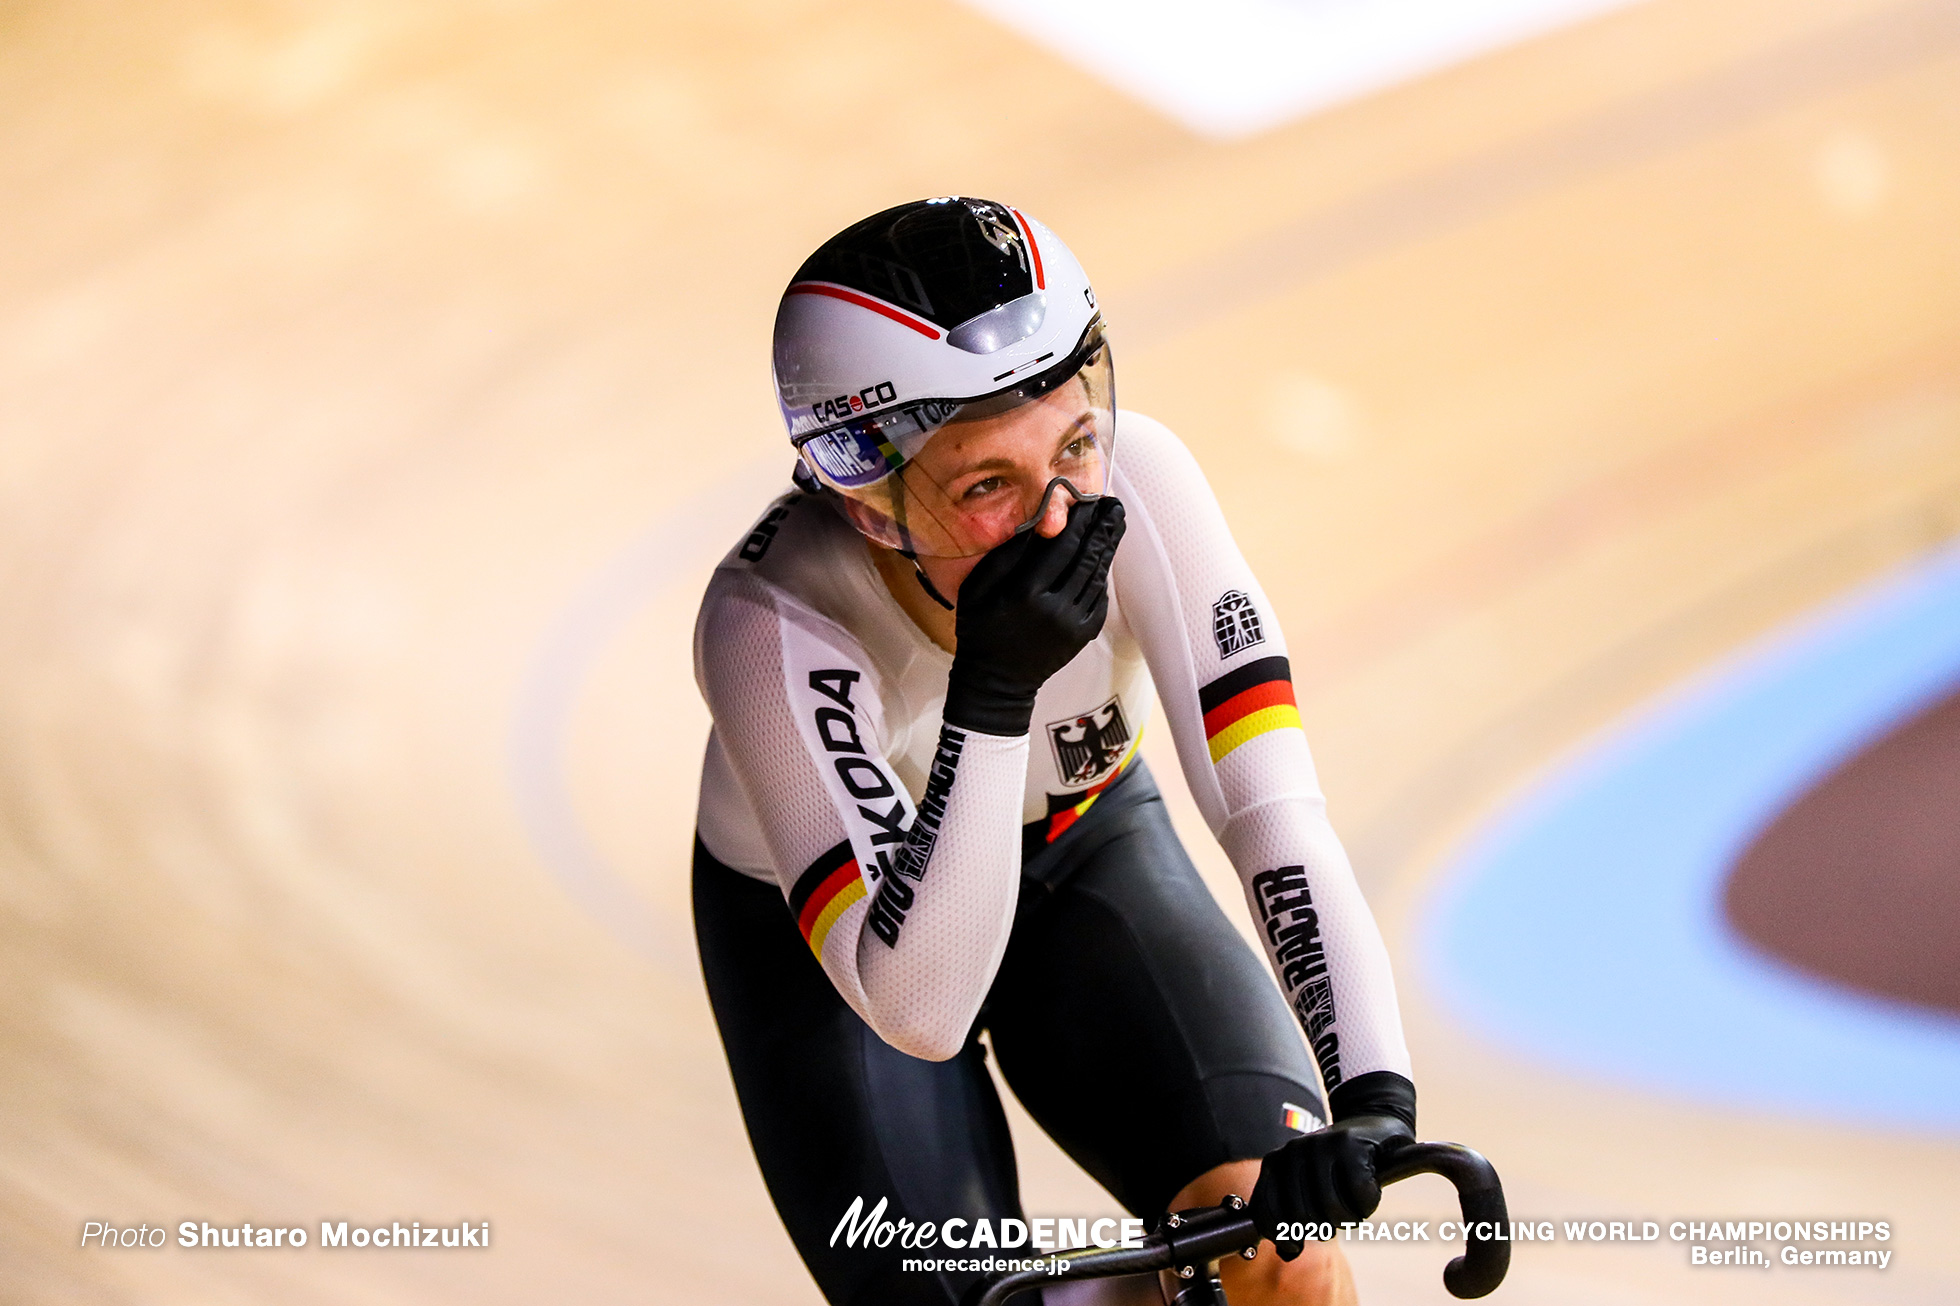 Women's Team Sprint / 2020 Track Cycling World Championships, Emma Hinze エマ・ヒンツェ